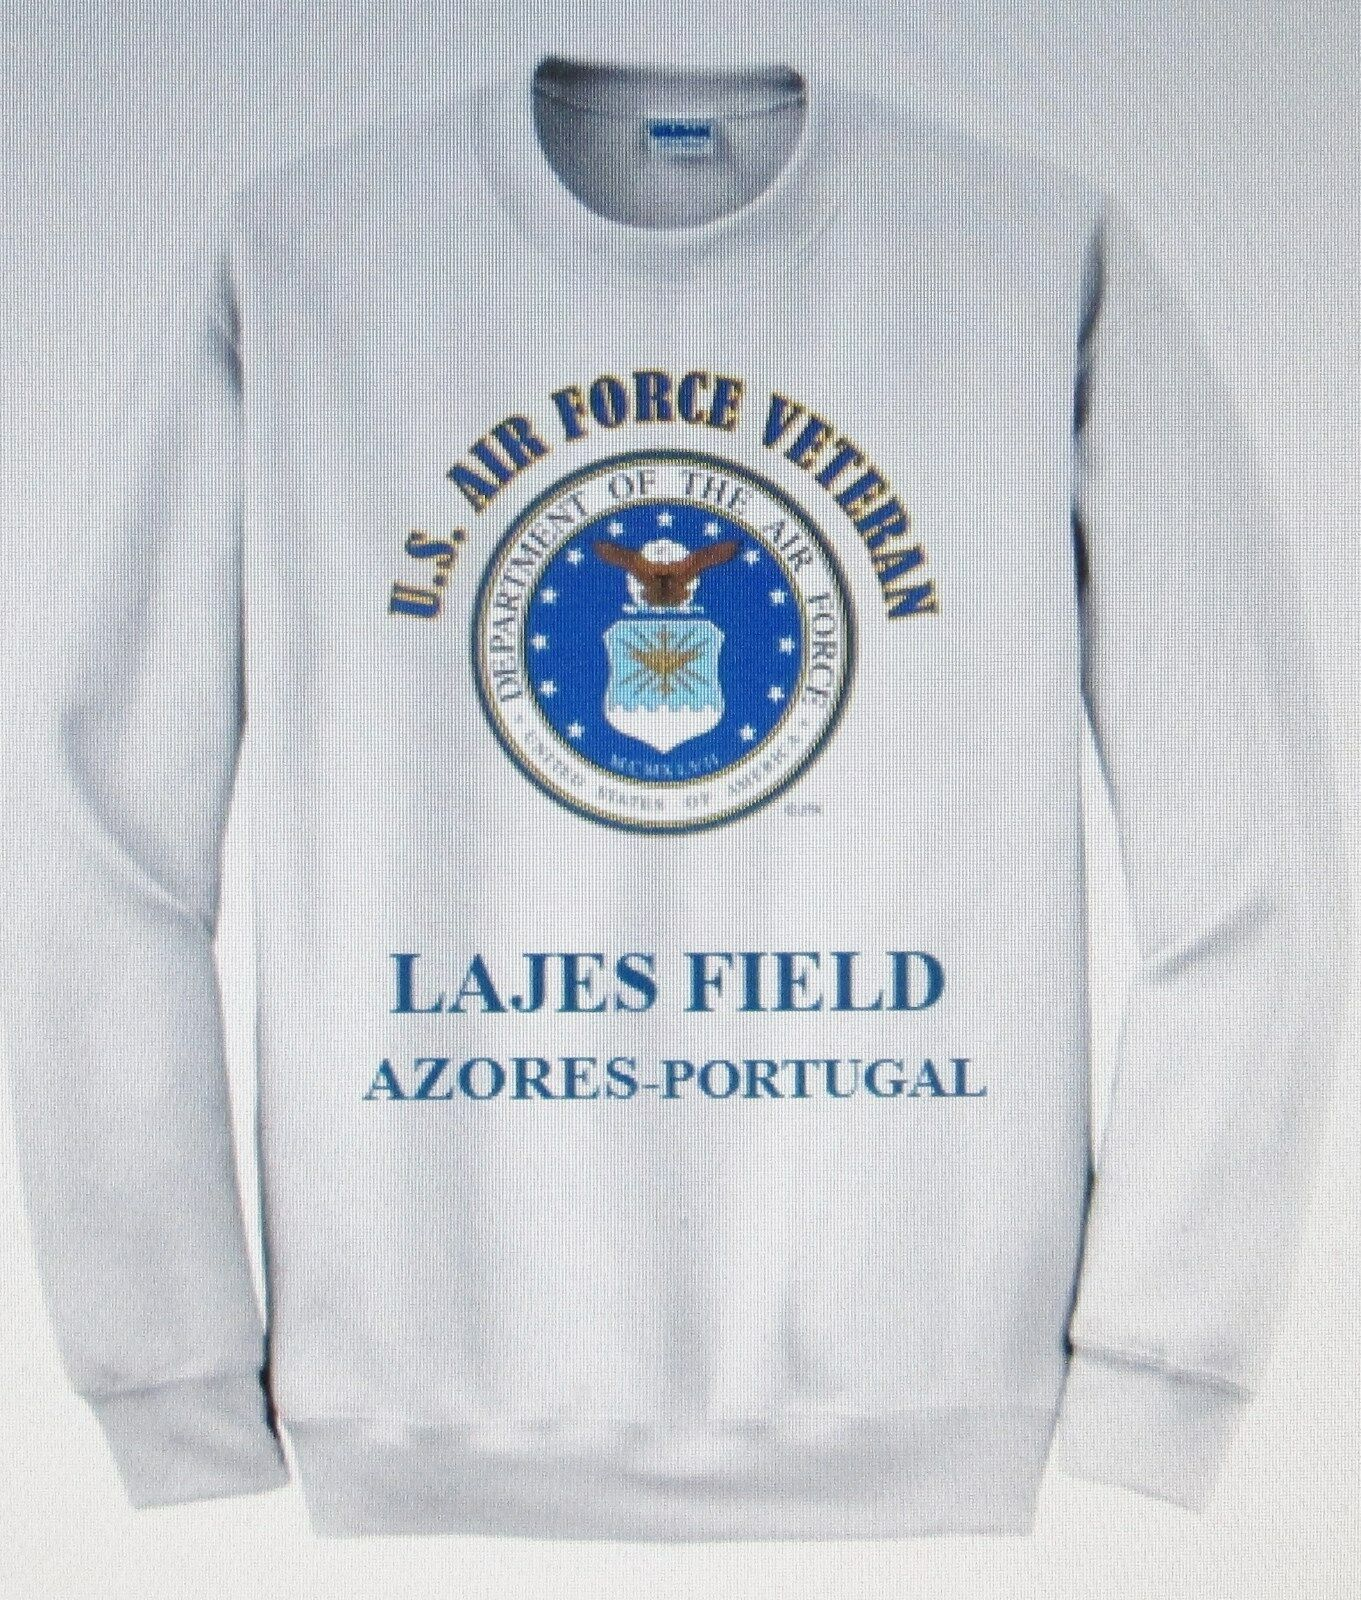 LAJES FIELD AZORES-PORTUGAL U.S. AIR FORCE EMBLEM SWEATSHIRT